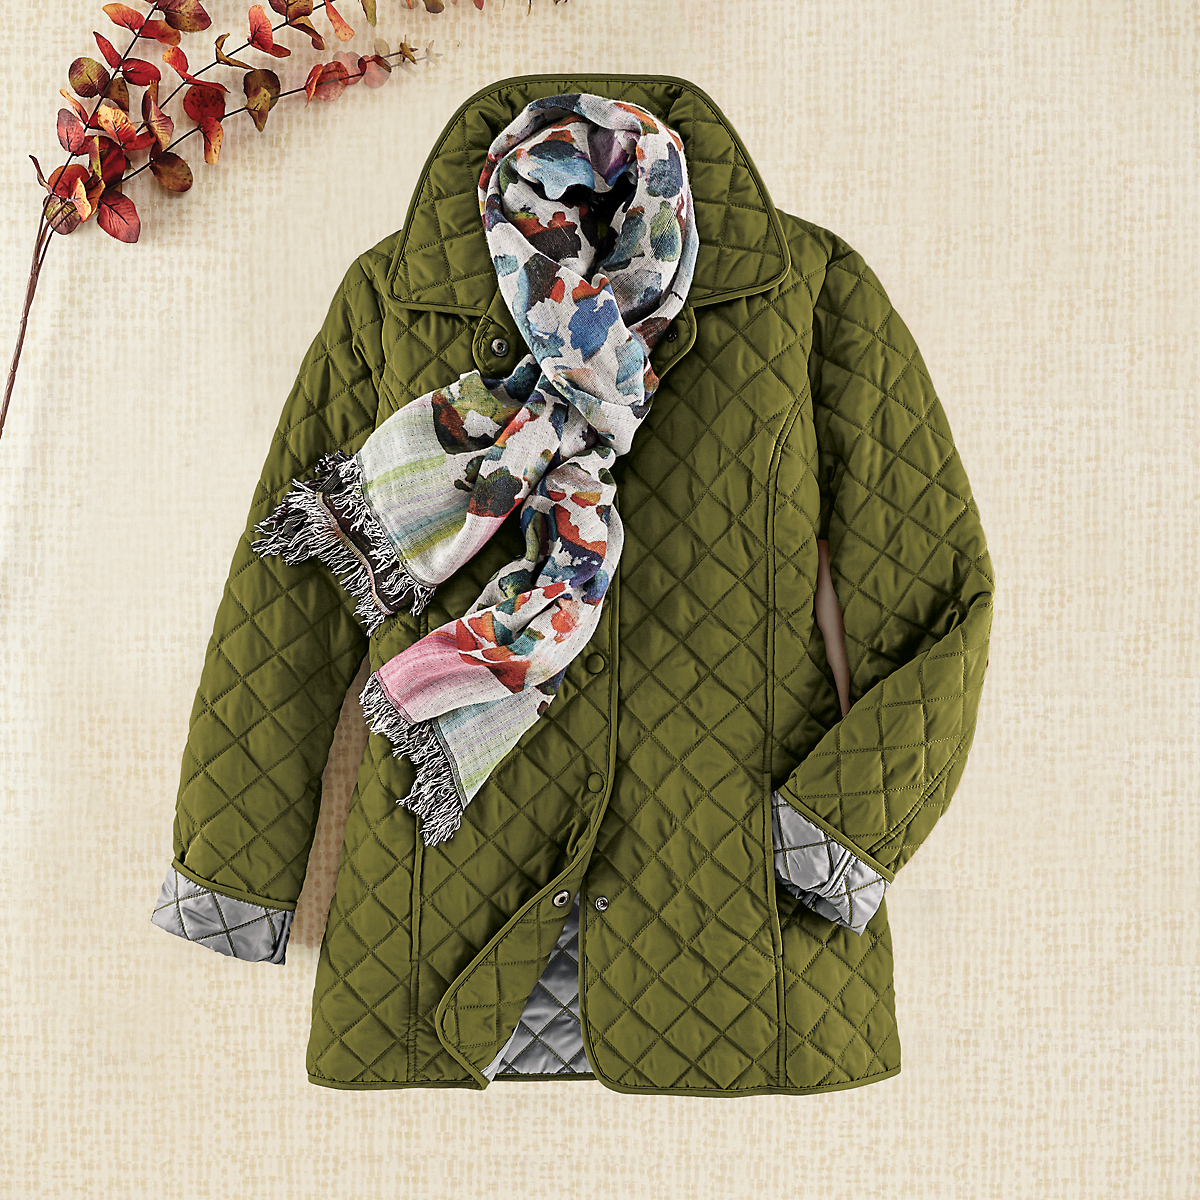 Silver Linings Quilted Coat, Moss Green